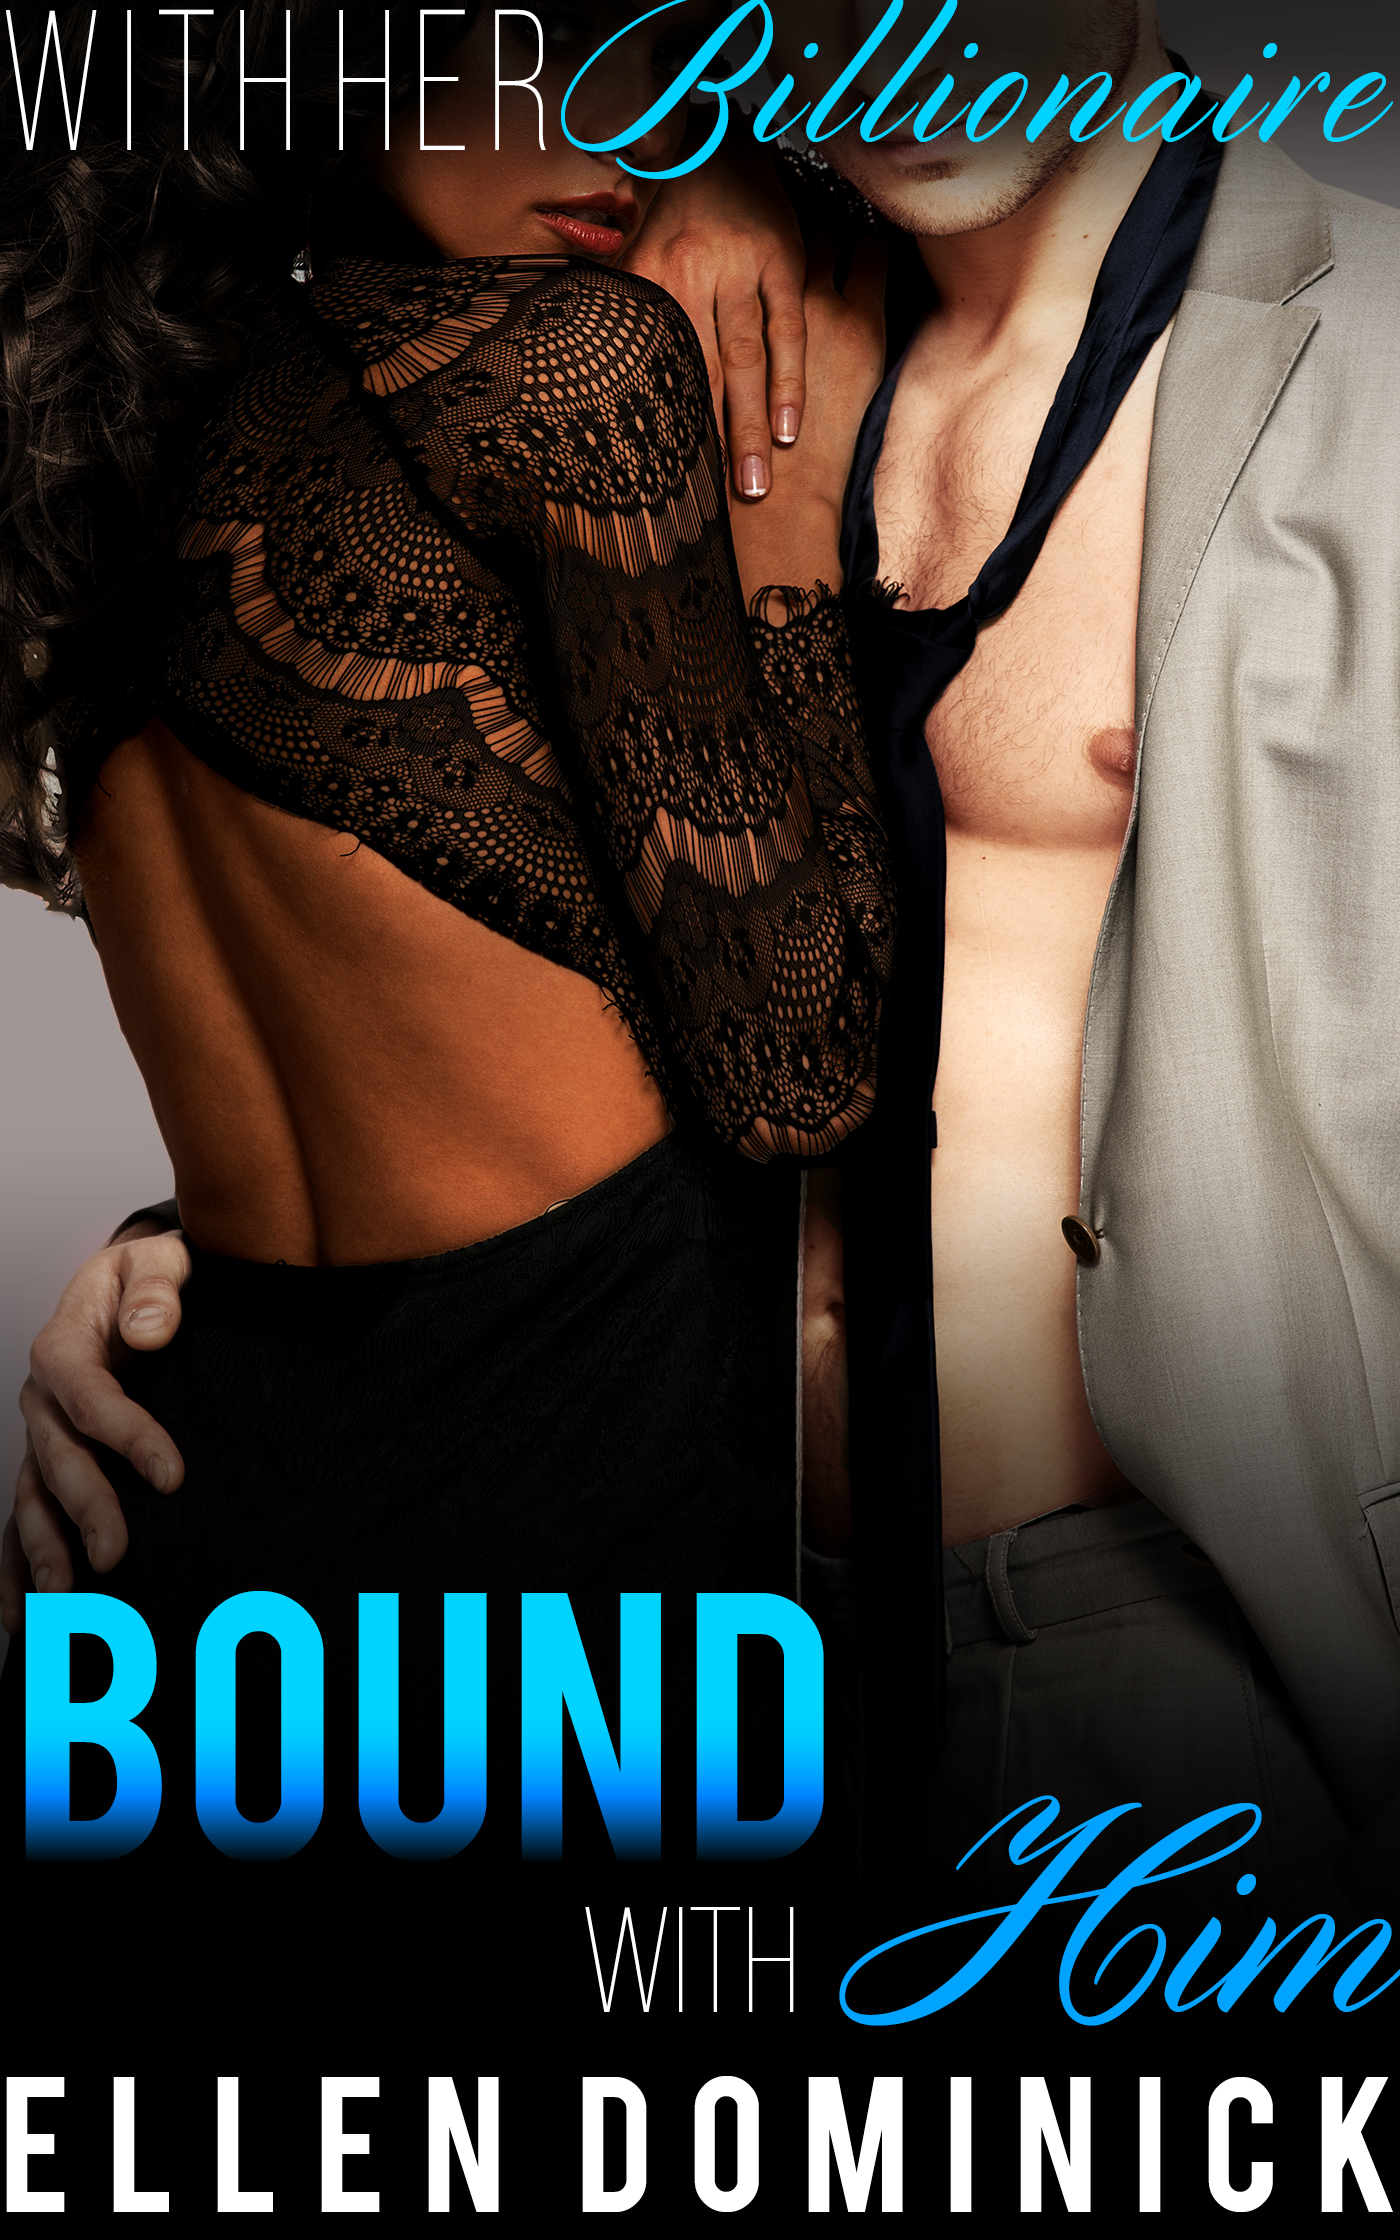 Bound with him: with her billionaire, book 4